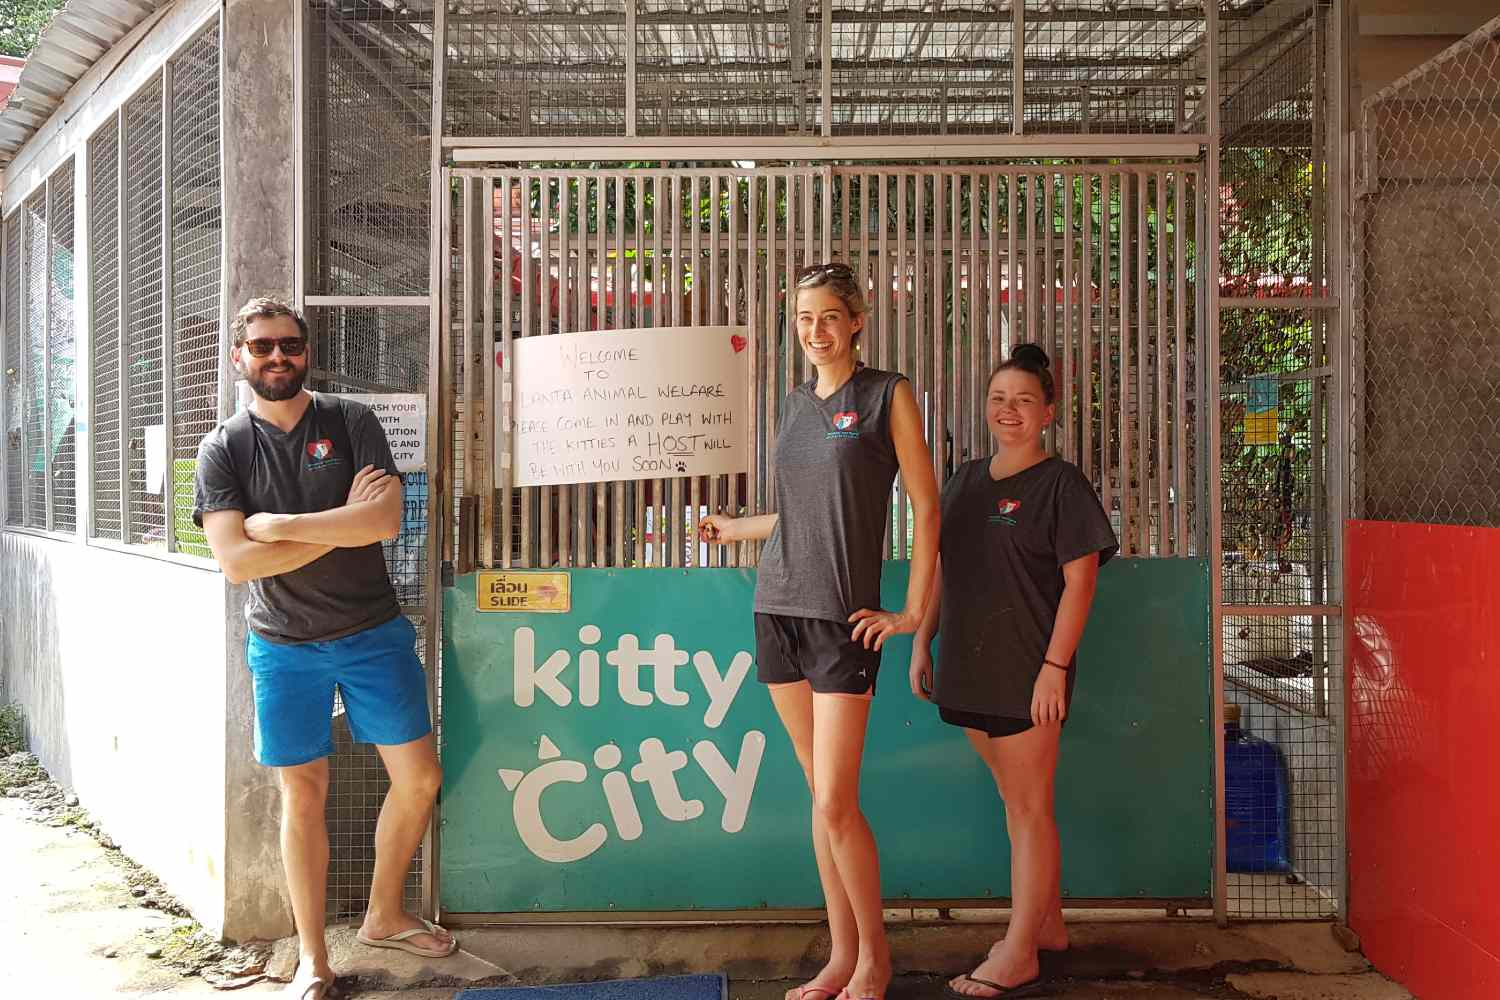 Animal Welfare, volunteers at the entrance to Kitty City